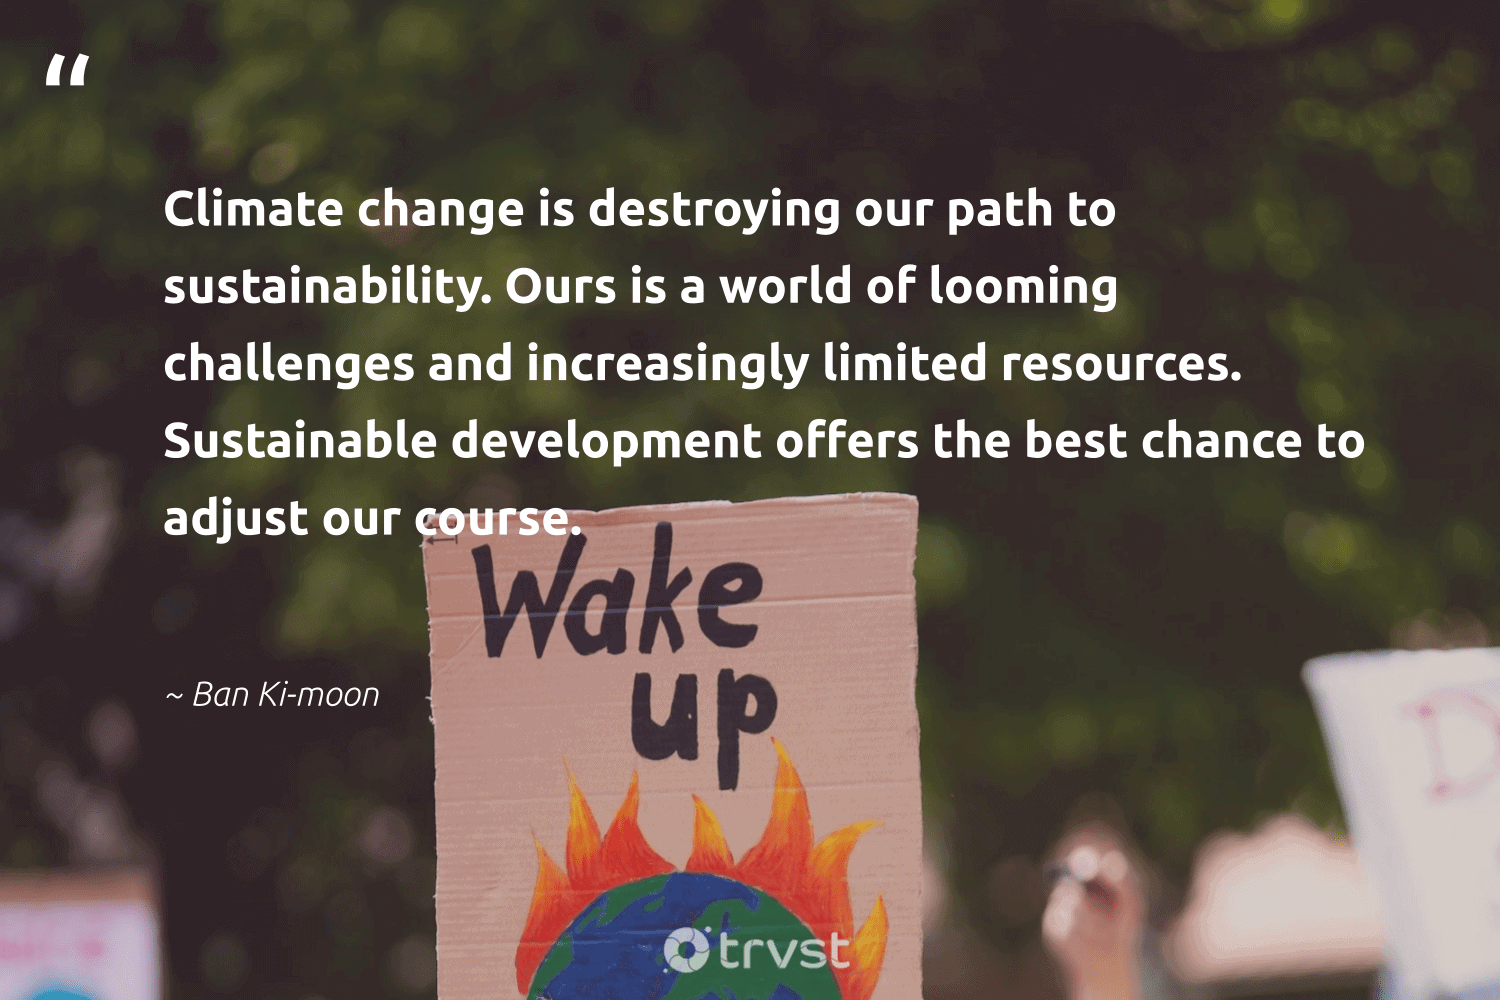 """""""Climate change is destroying our path to sustainability. Ours is a world of looming challenges and increasingly limited resources. Sustainable development offers the best chance to adjust our course.""""  - Ban Ki-moon #trvst #quotes #climatechange #sustainable #sustainability #climate #development #globalwarming #climateaction #sustainablefutures #climatechangeisreal #dosomething"""